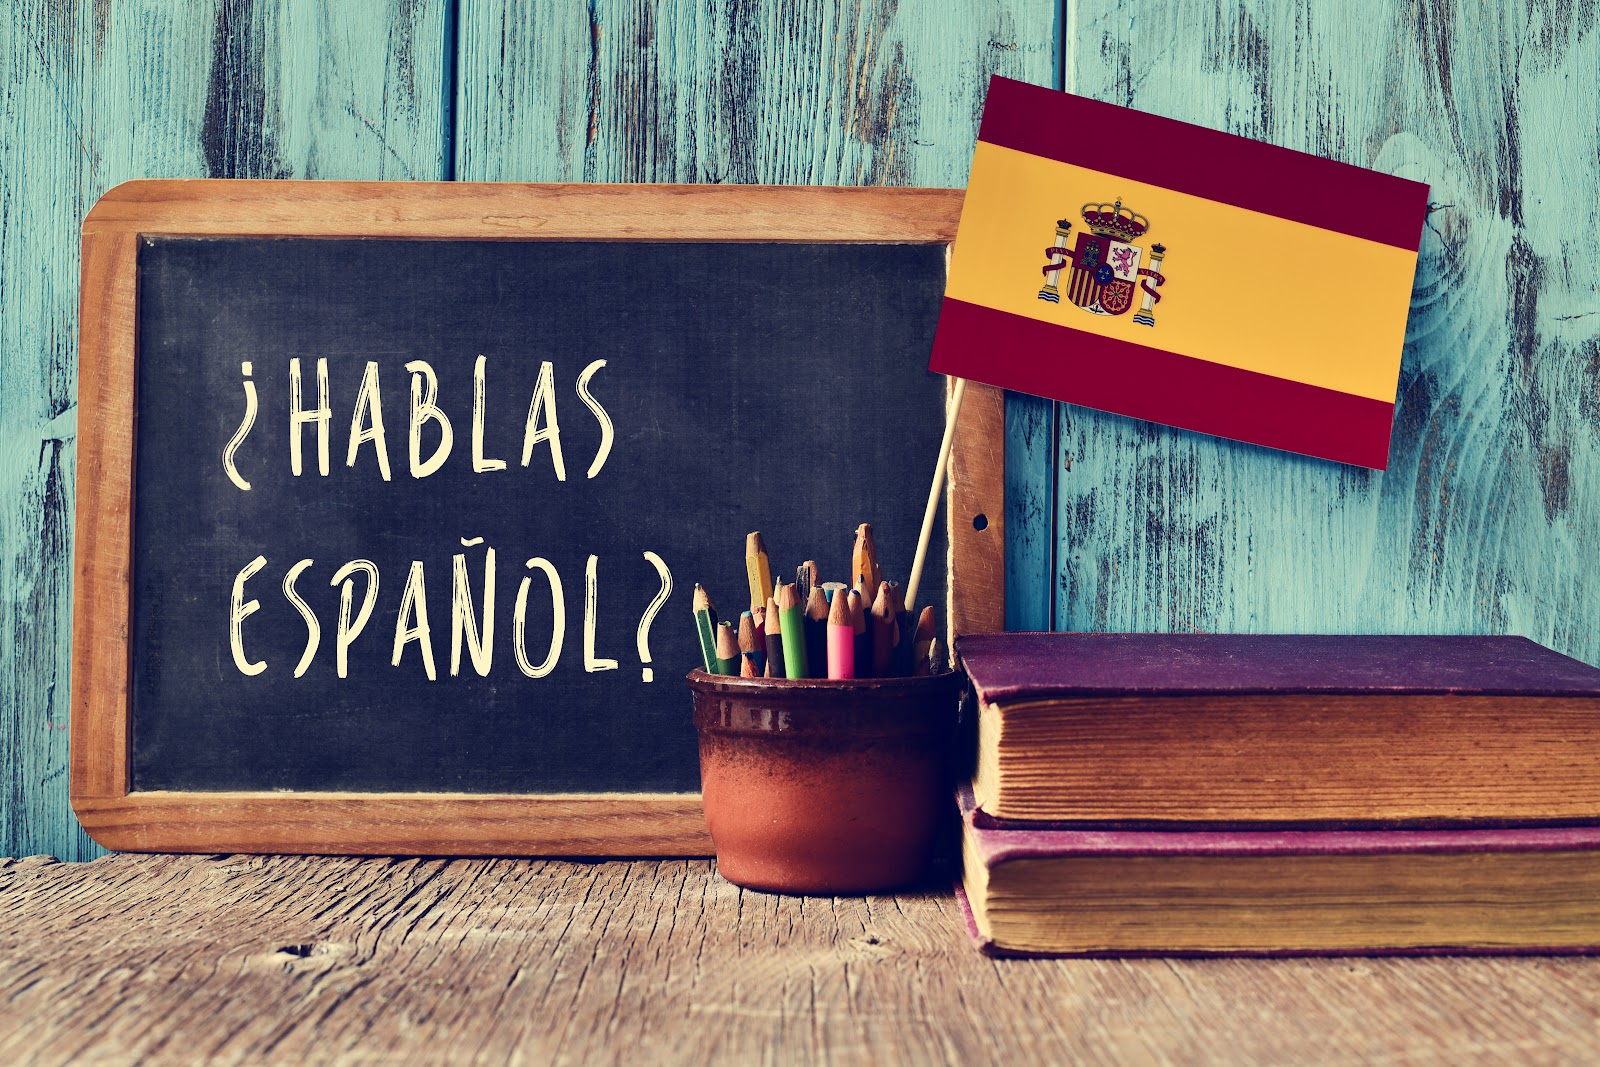 A blackboard with Spanish written on it and a Spanish flag.